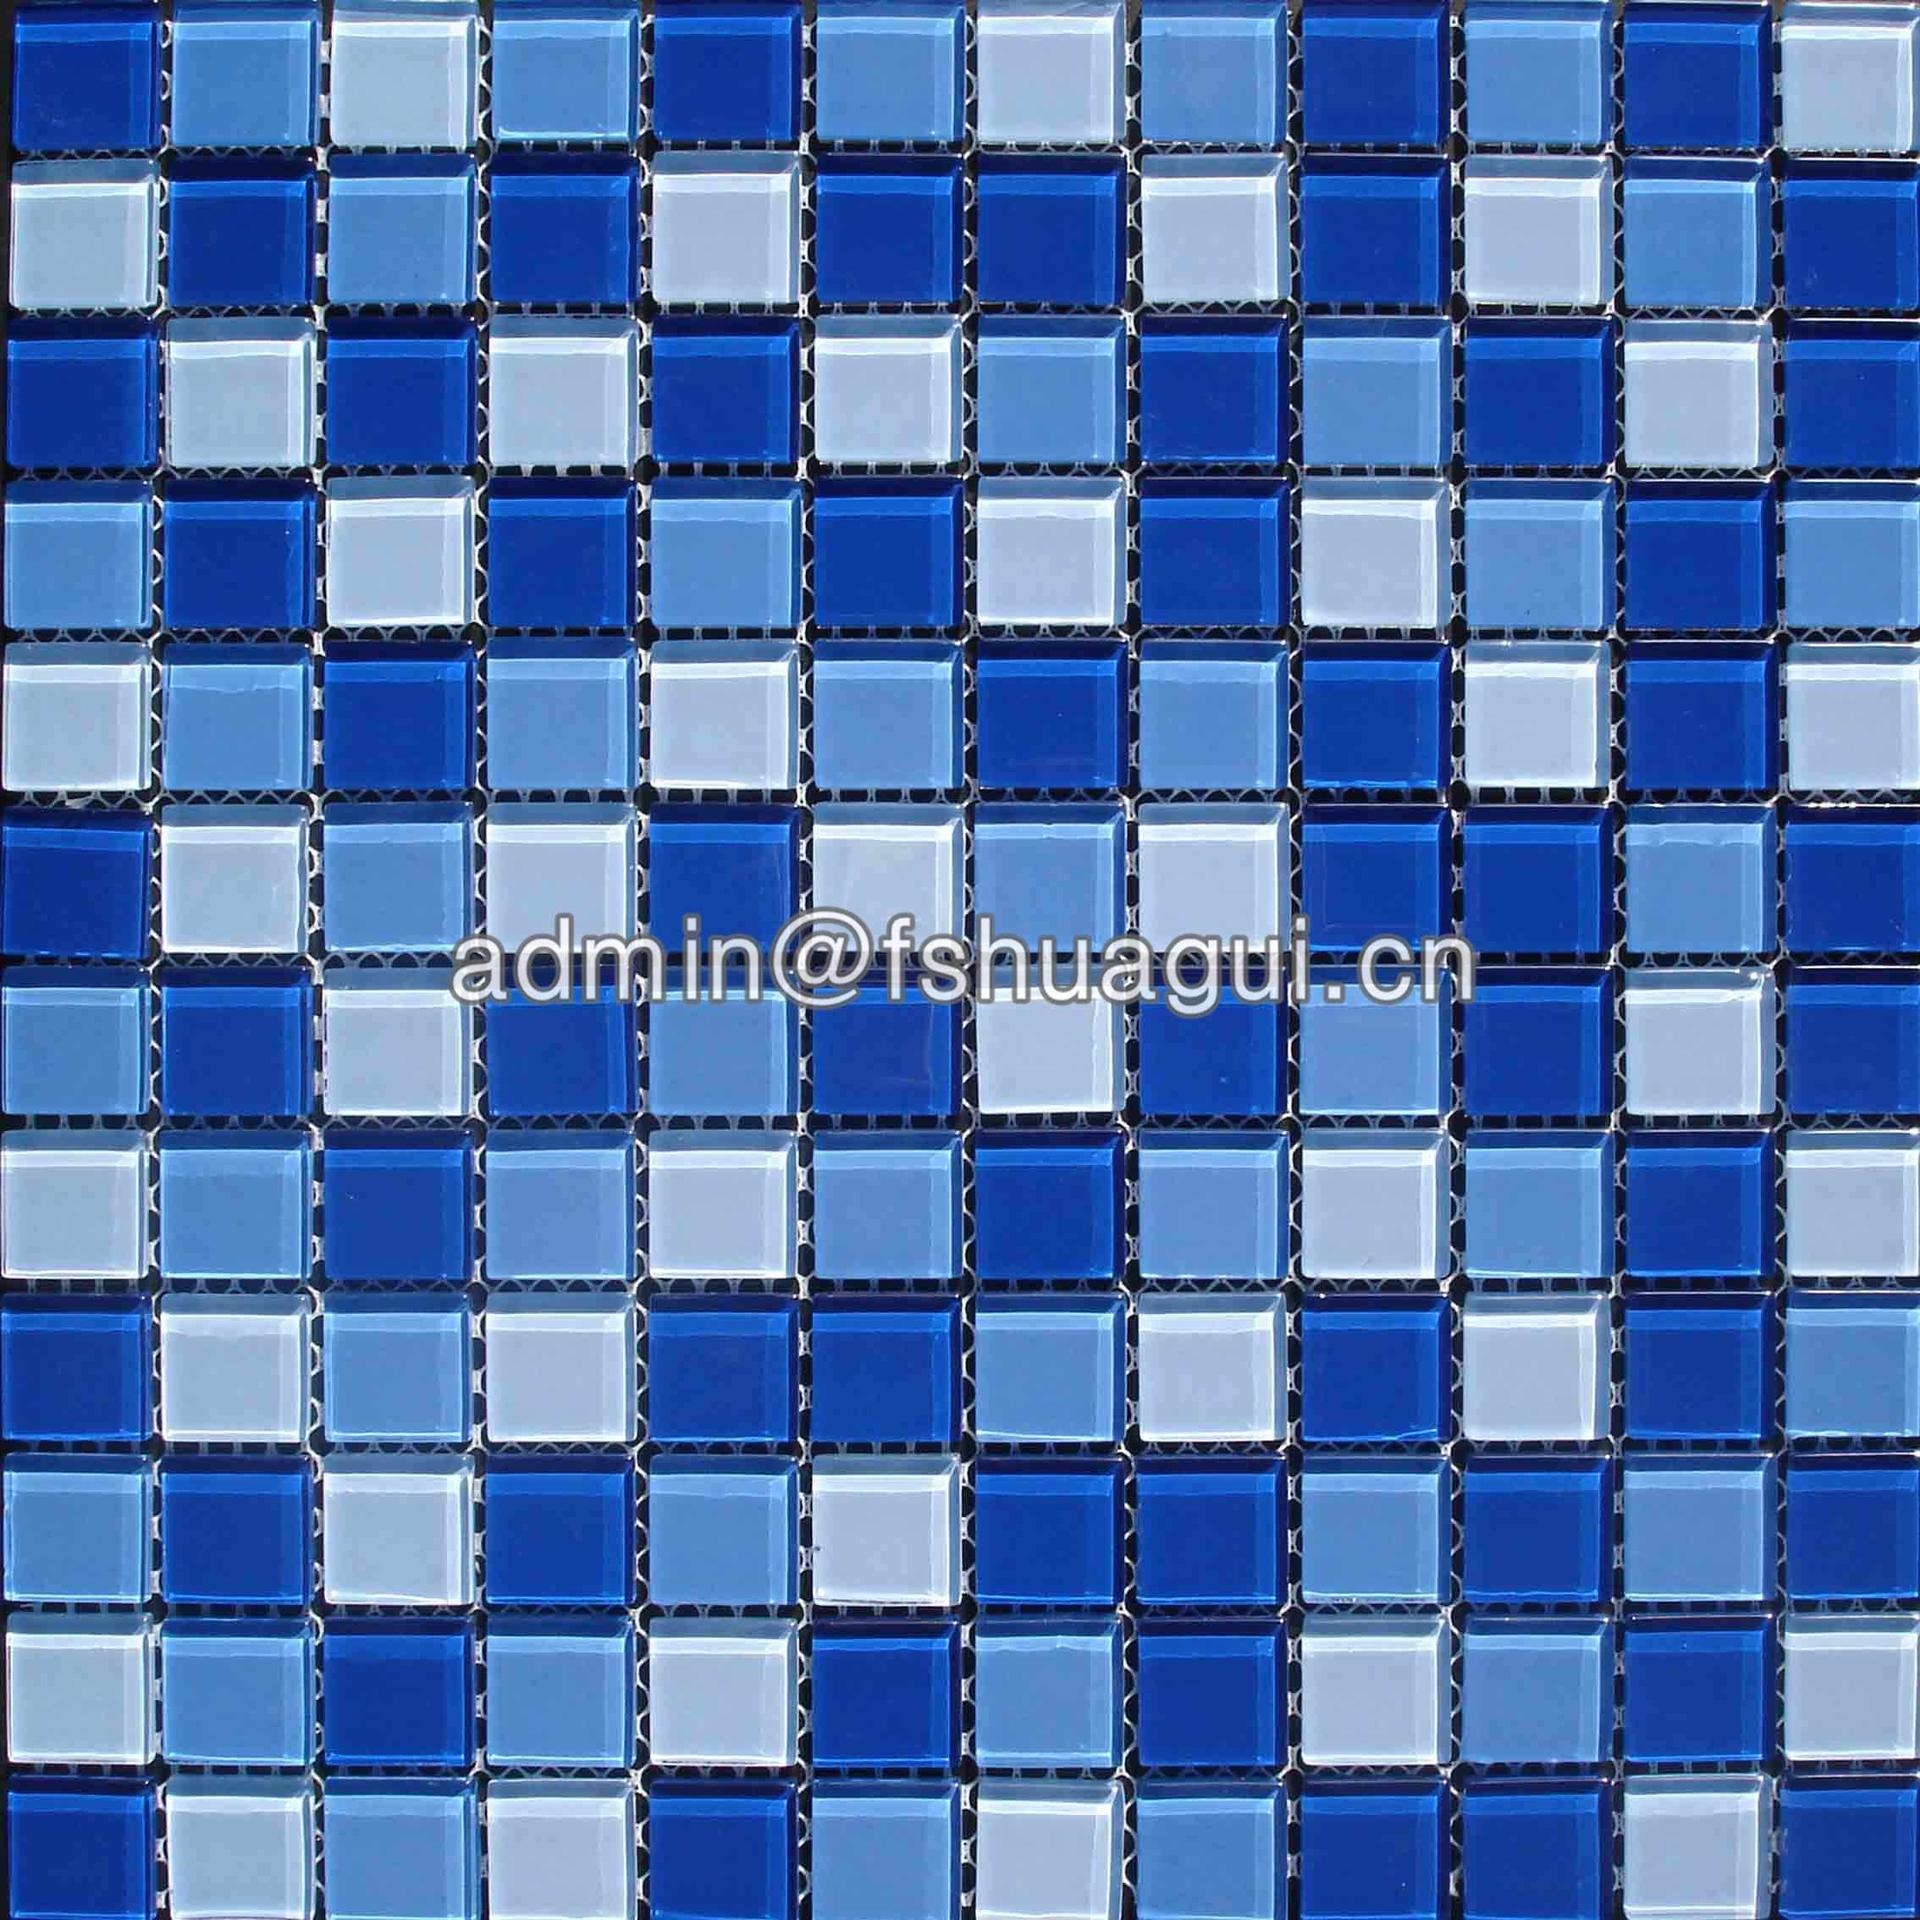 Glass mix blue colors swimming pool mosaic glass tile HG-423010